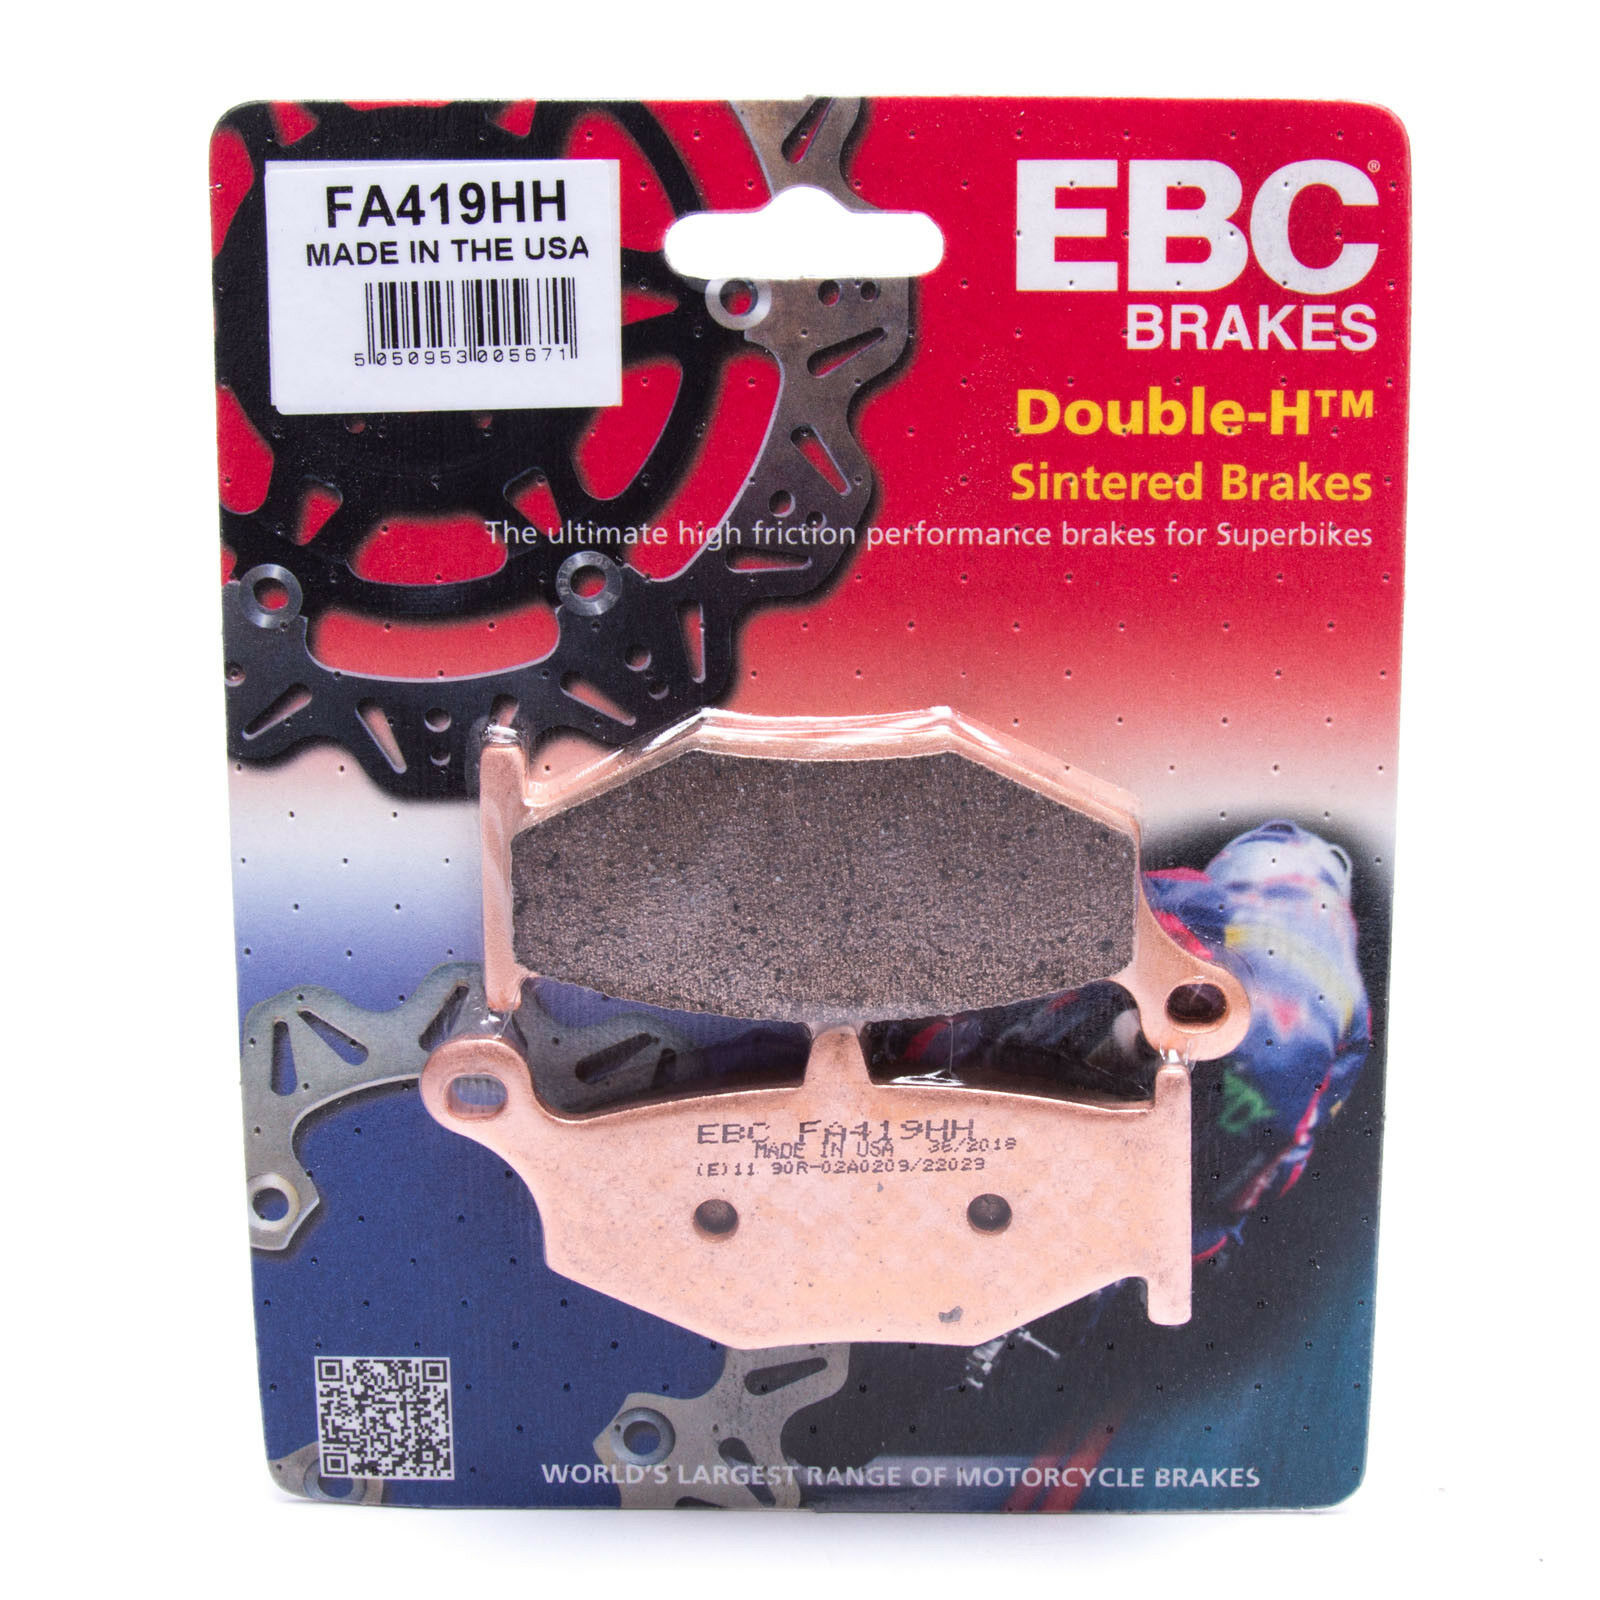 FA419HH Rear Sintered EBC HH Brake pads for SUZUKI GSXR GSXR1000     2007-08